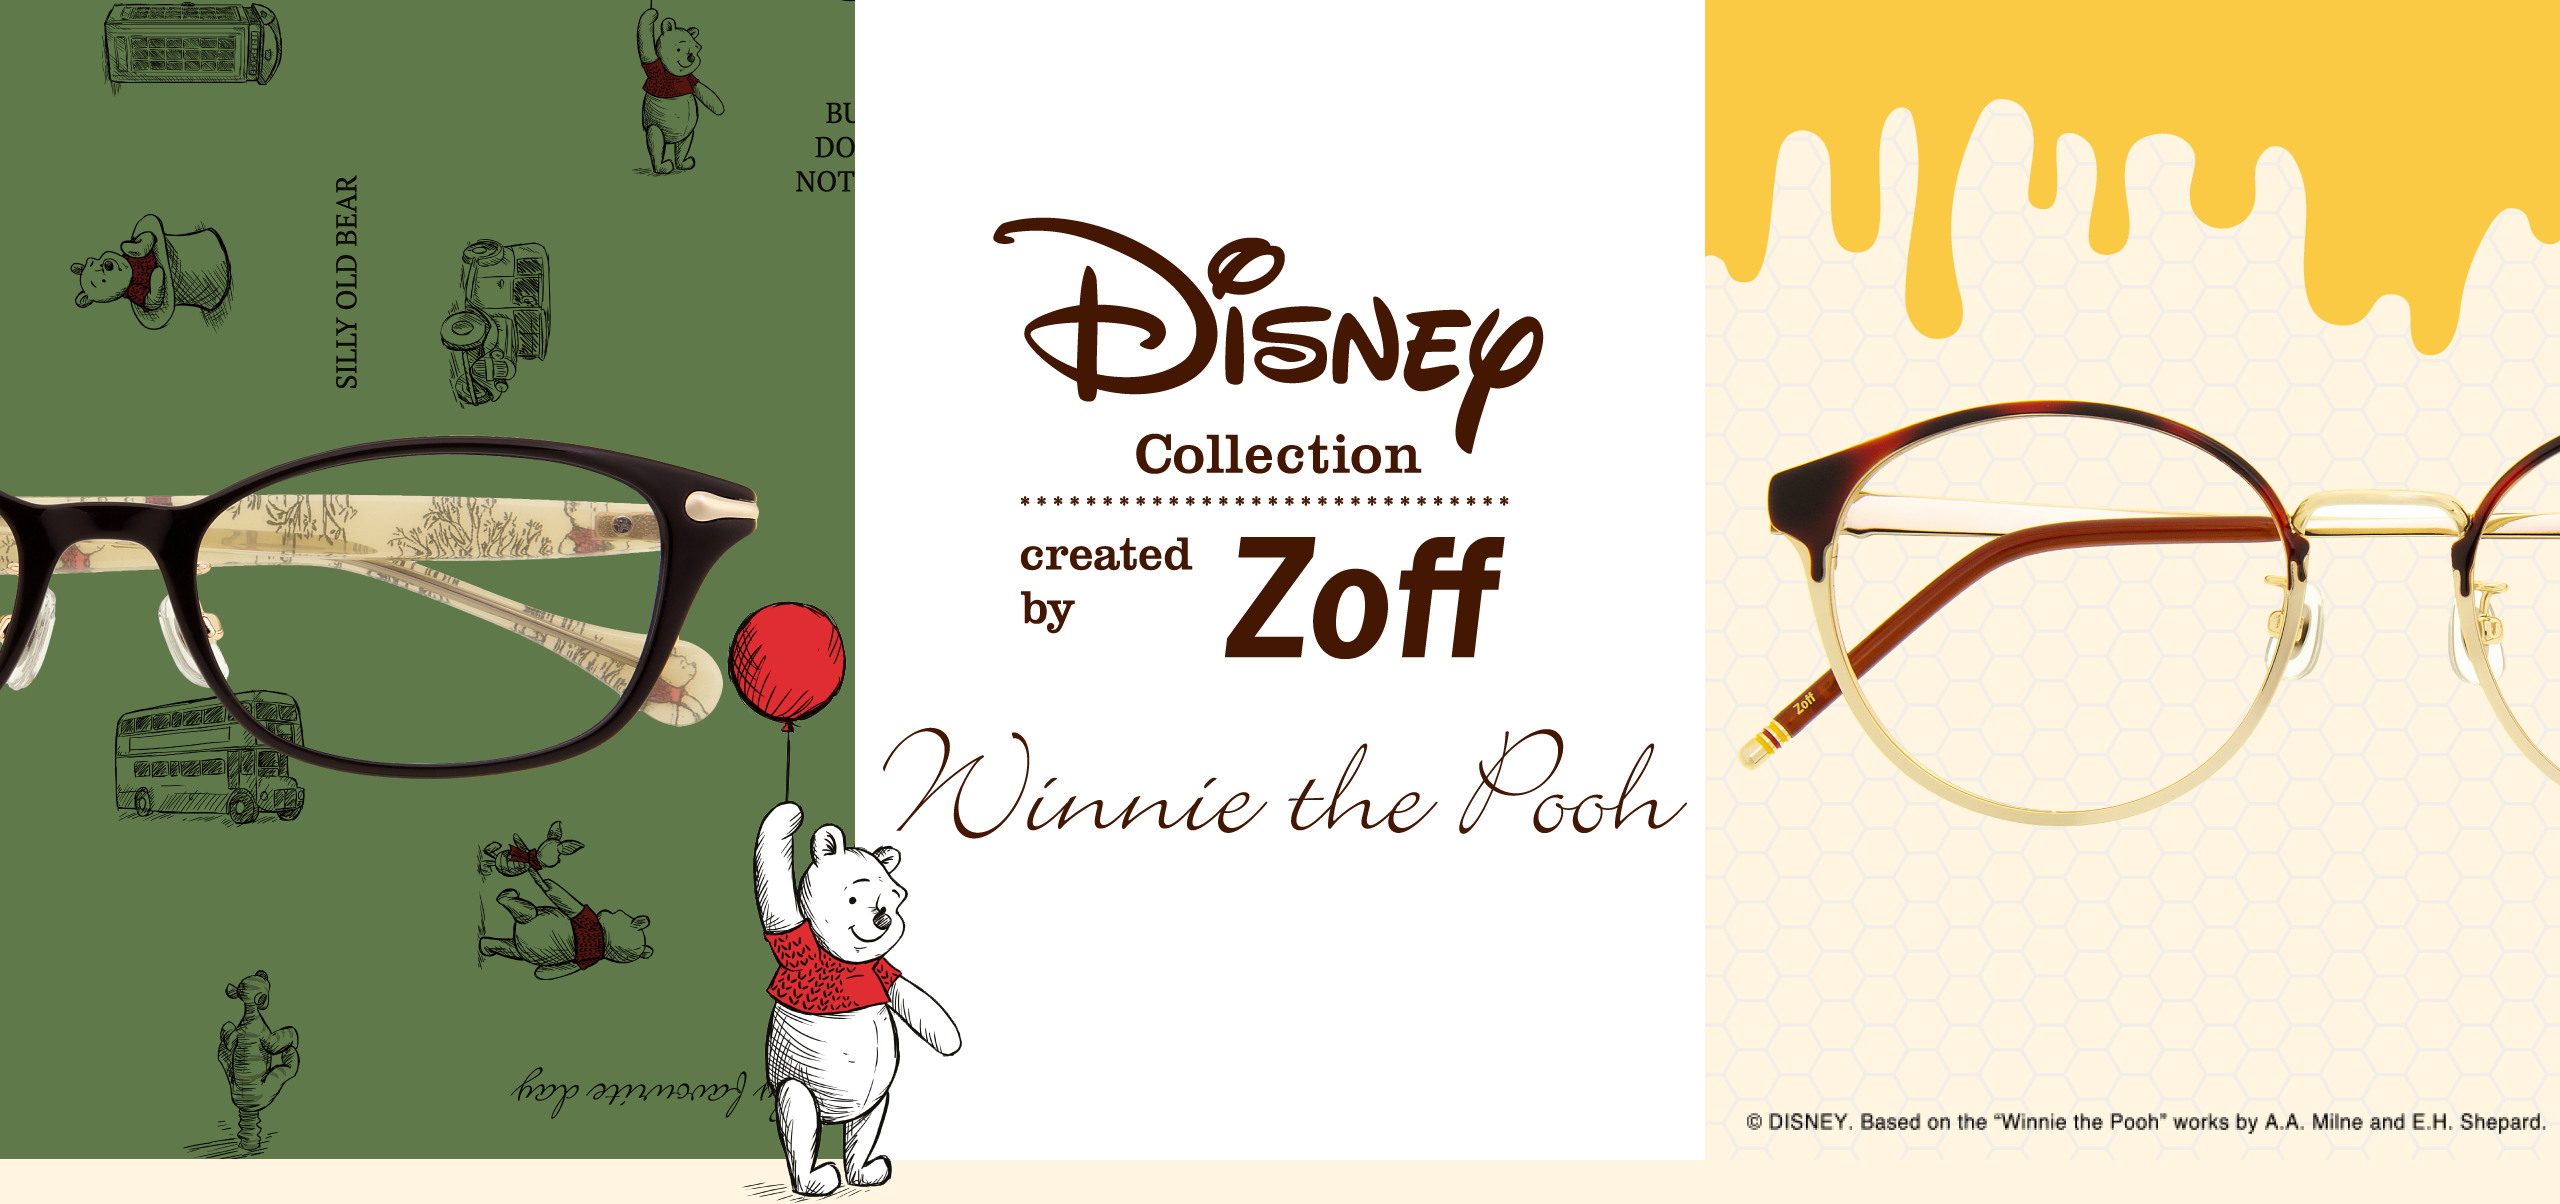 "DISNEY Collection created by Zoff ©DISNEY. Based on the ""Winnie the Poo"" works by A.A. Milne and E.H. Shepard."